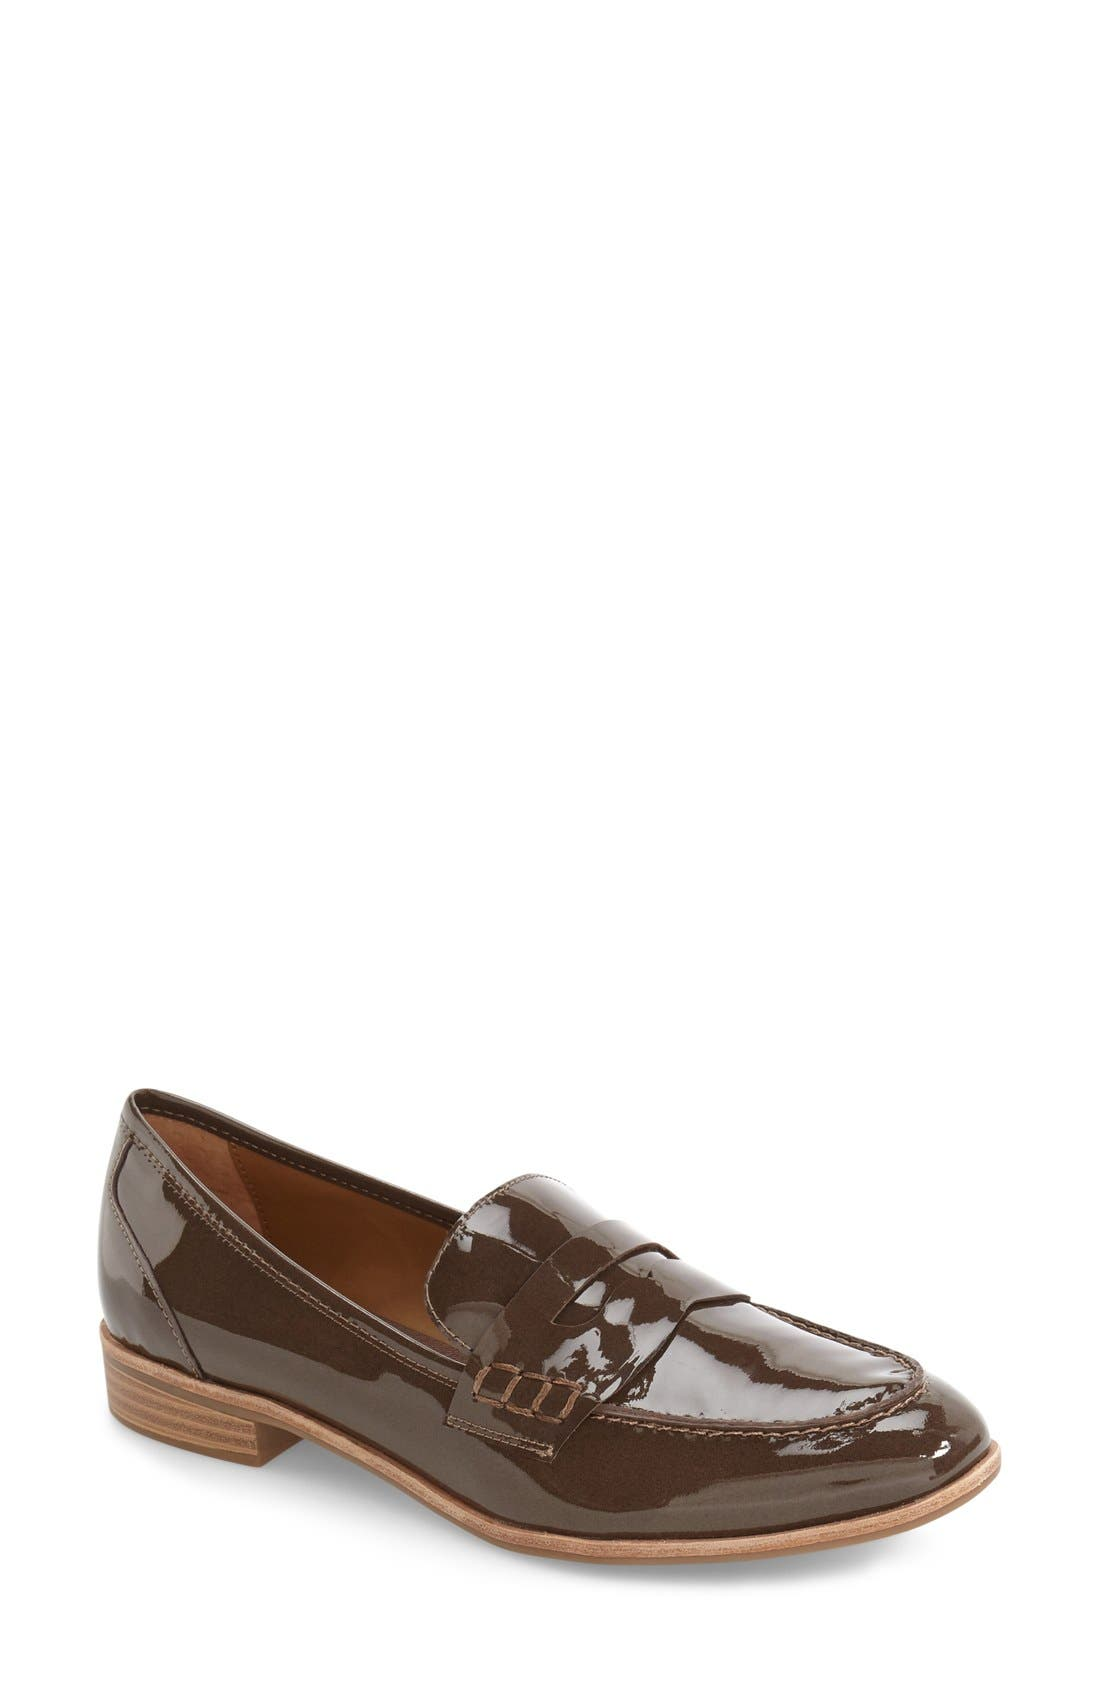 Main Image - G.H. Bass & Co. Emilia Penny Loafer (Women)